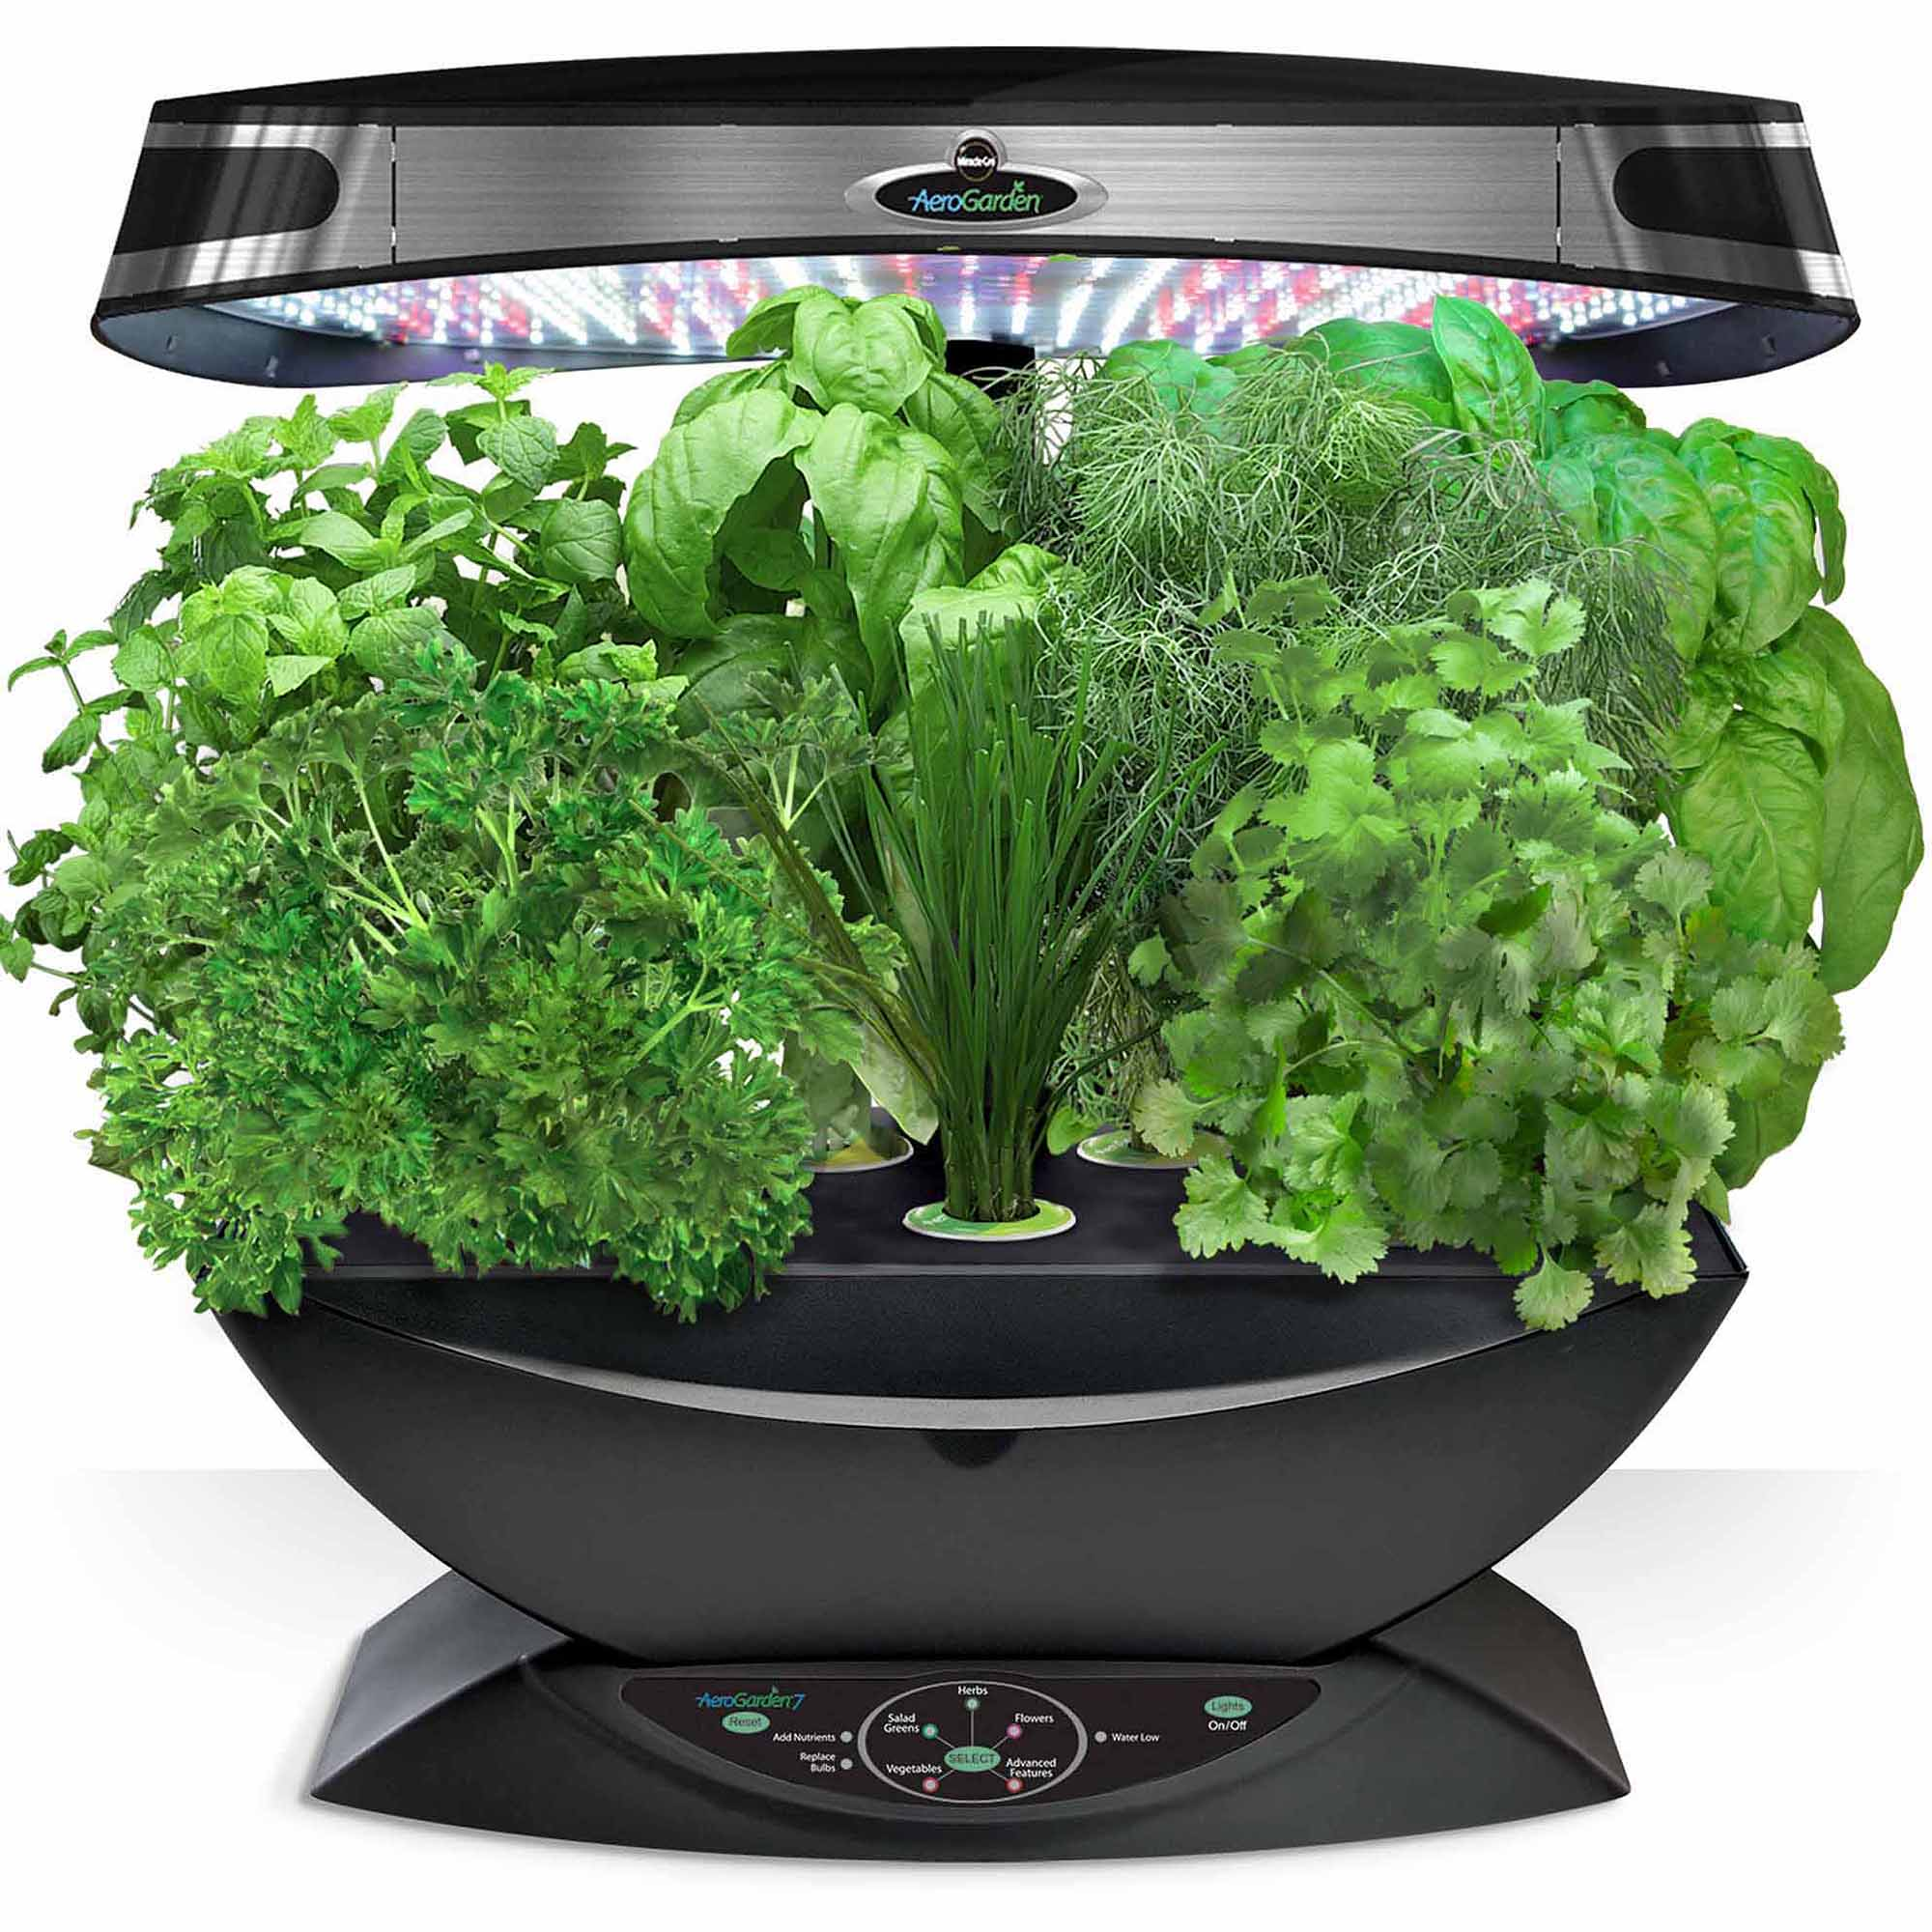 Miracle-Gro AeroGarden 7 LED with Gourmet Herb Seed Pod Kit